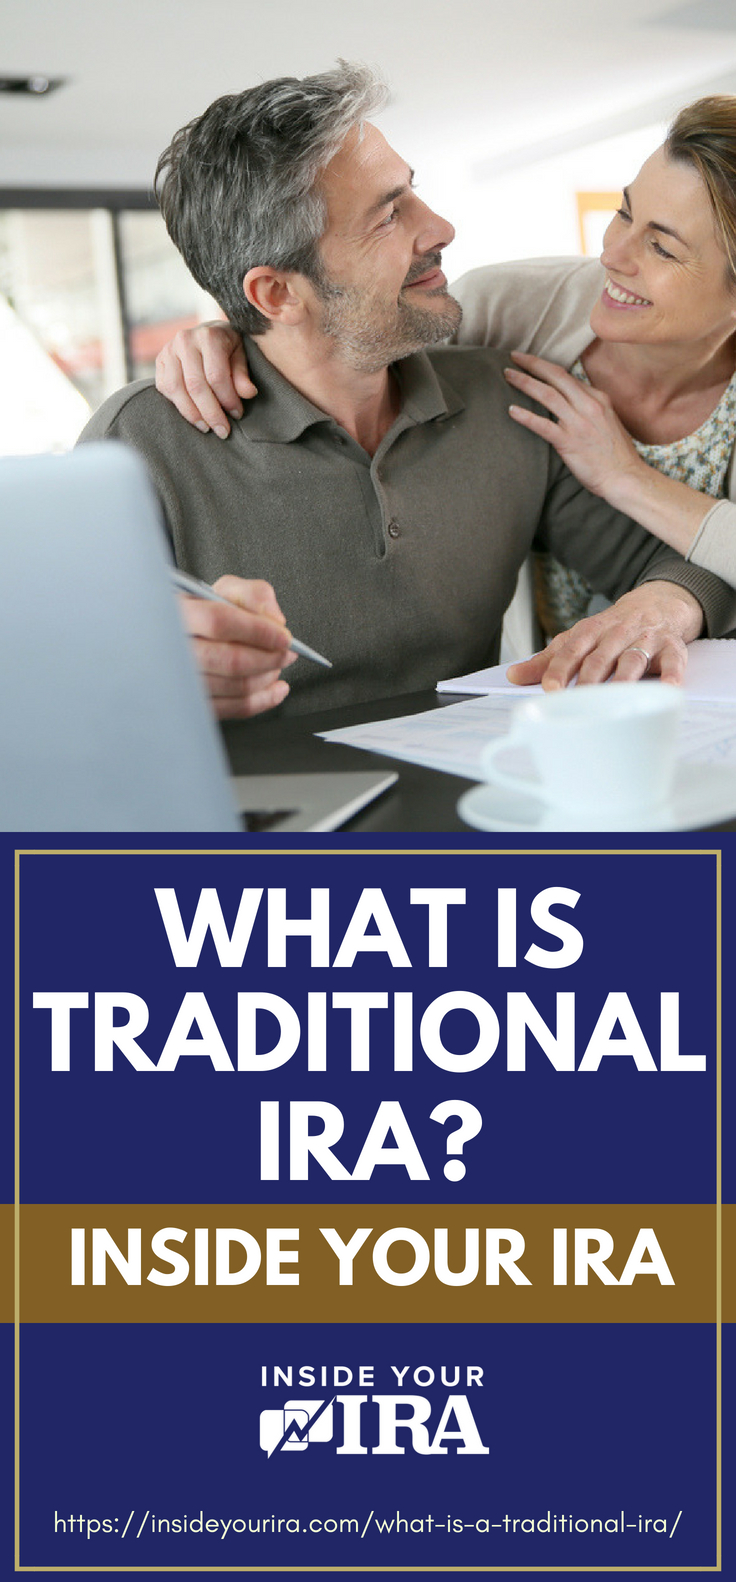 Pinterest Placard | What Is A Traditional IRA? | Inside Your IRA 1 | https://insideyourira.com/what-is-a-traditional-ira/